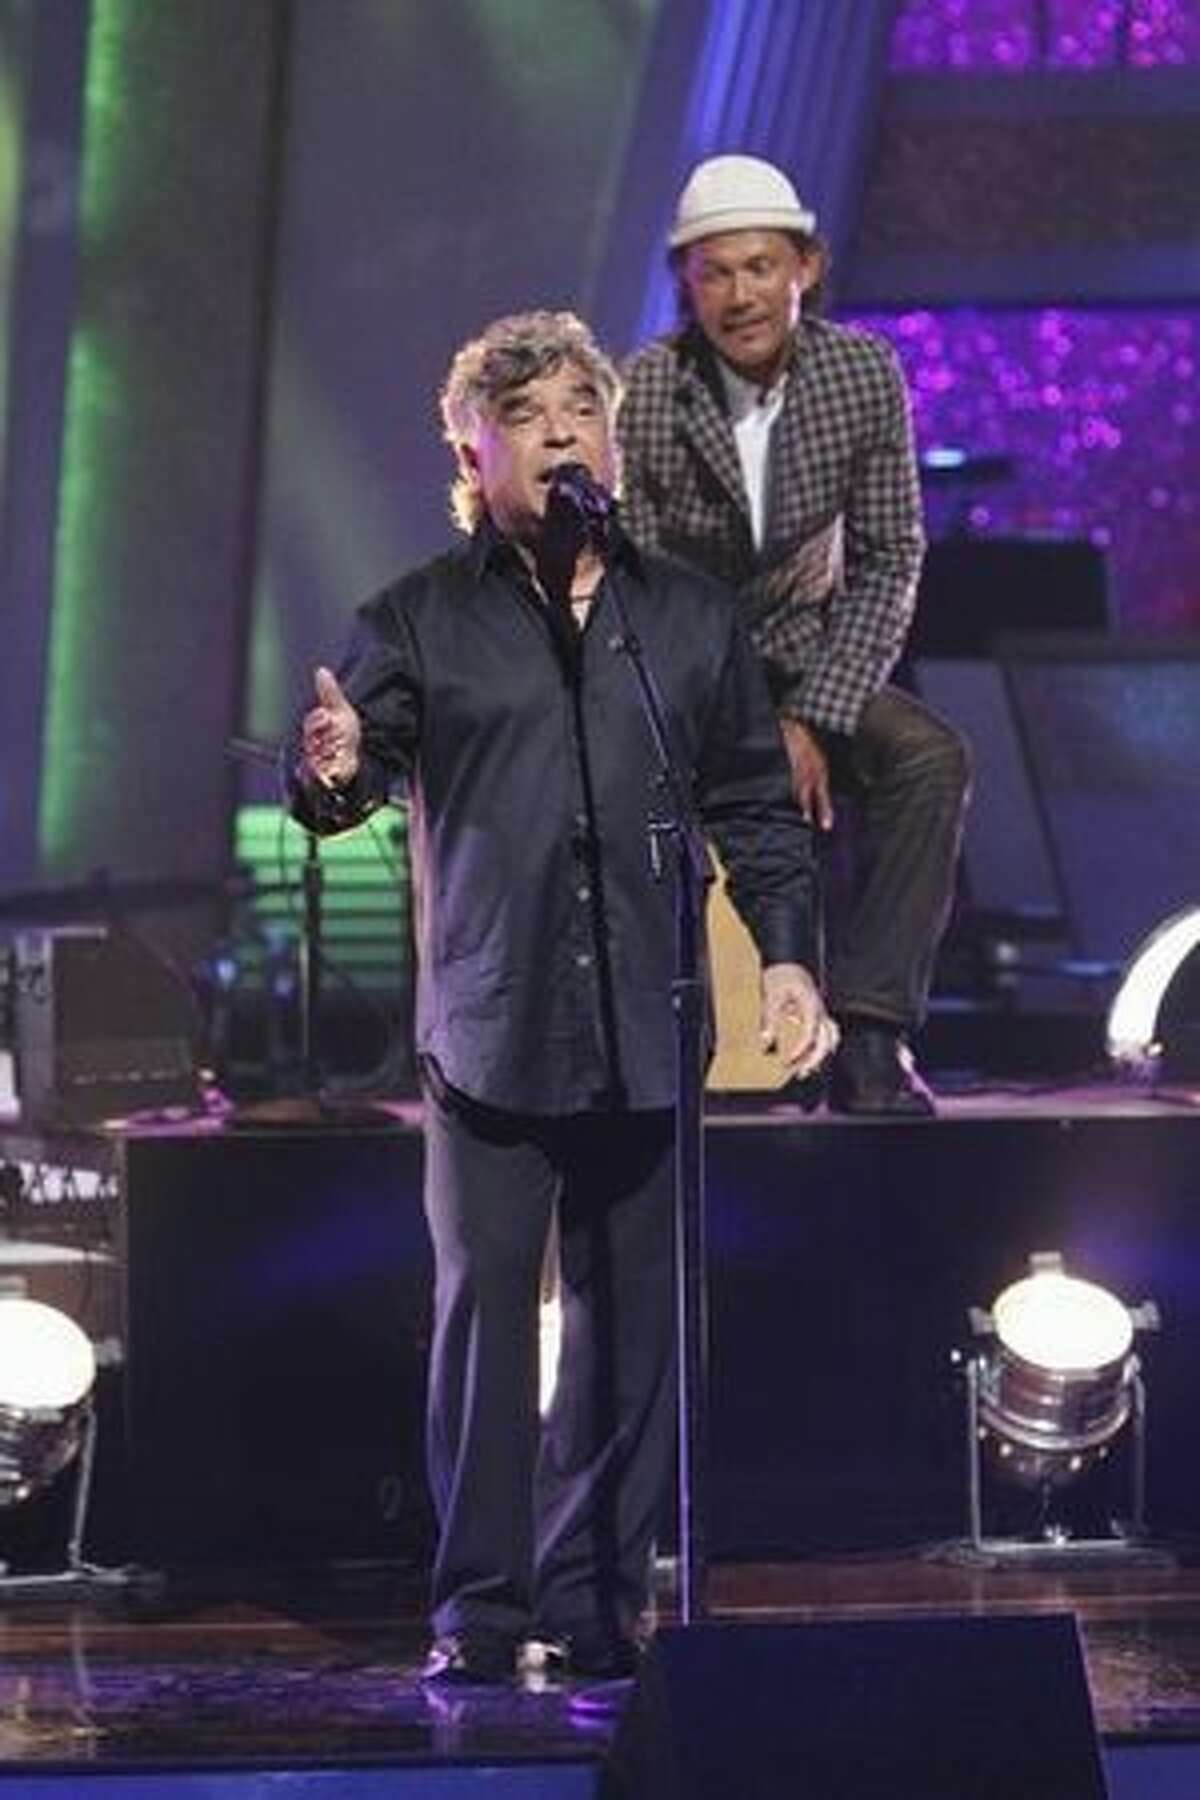 World-famous band Gipsy Kings performed their flamenco-flavored rendition of